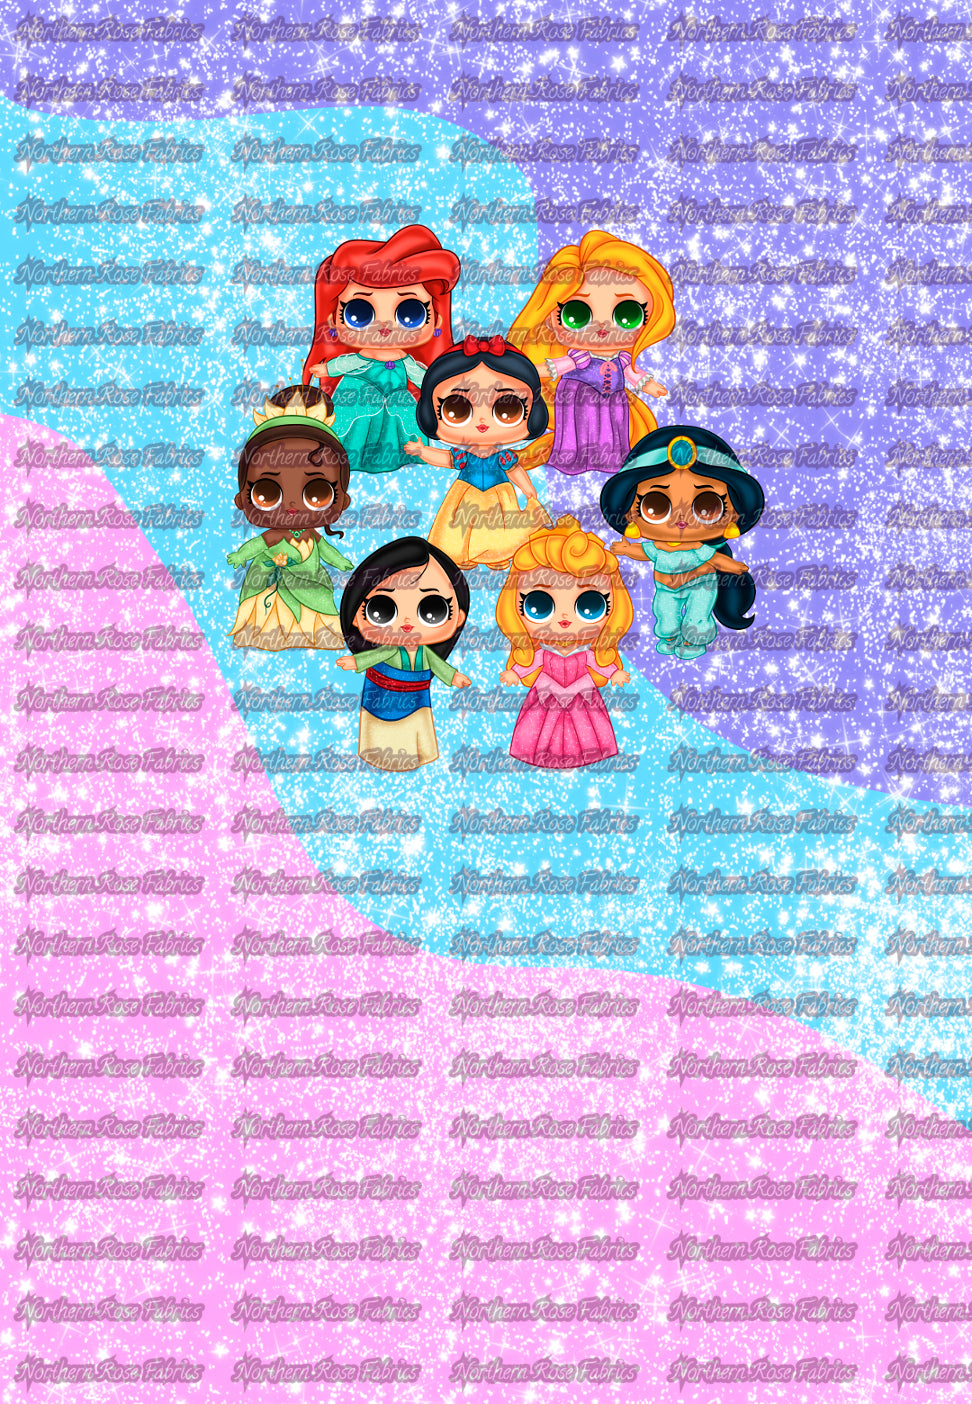 LOL Princess Version 2 Panels Kid Size (18x26 inches)